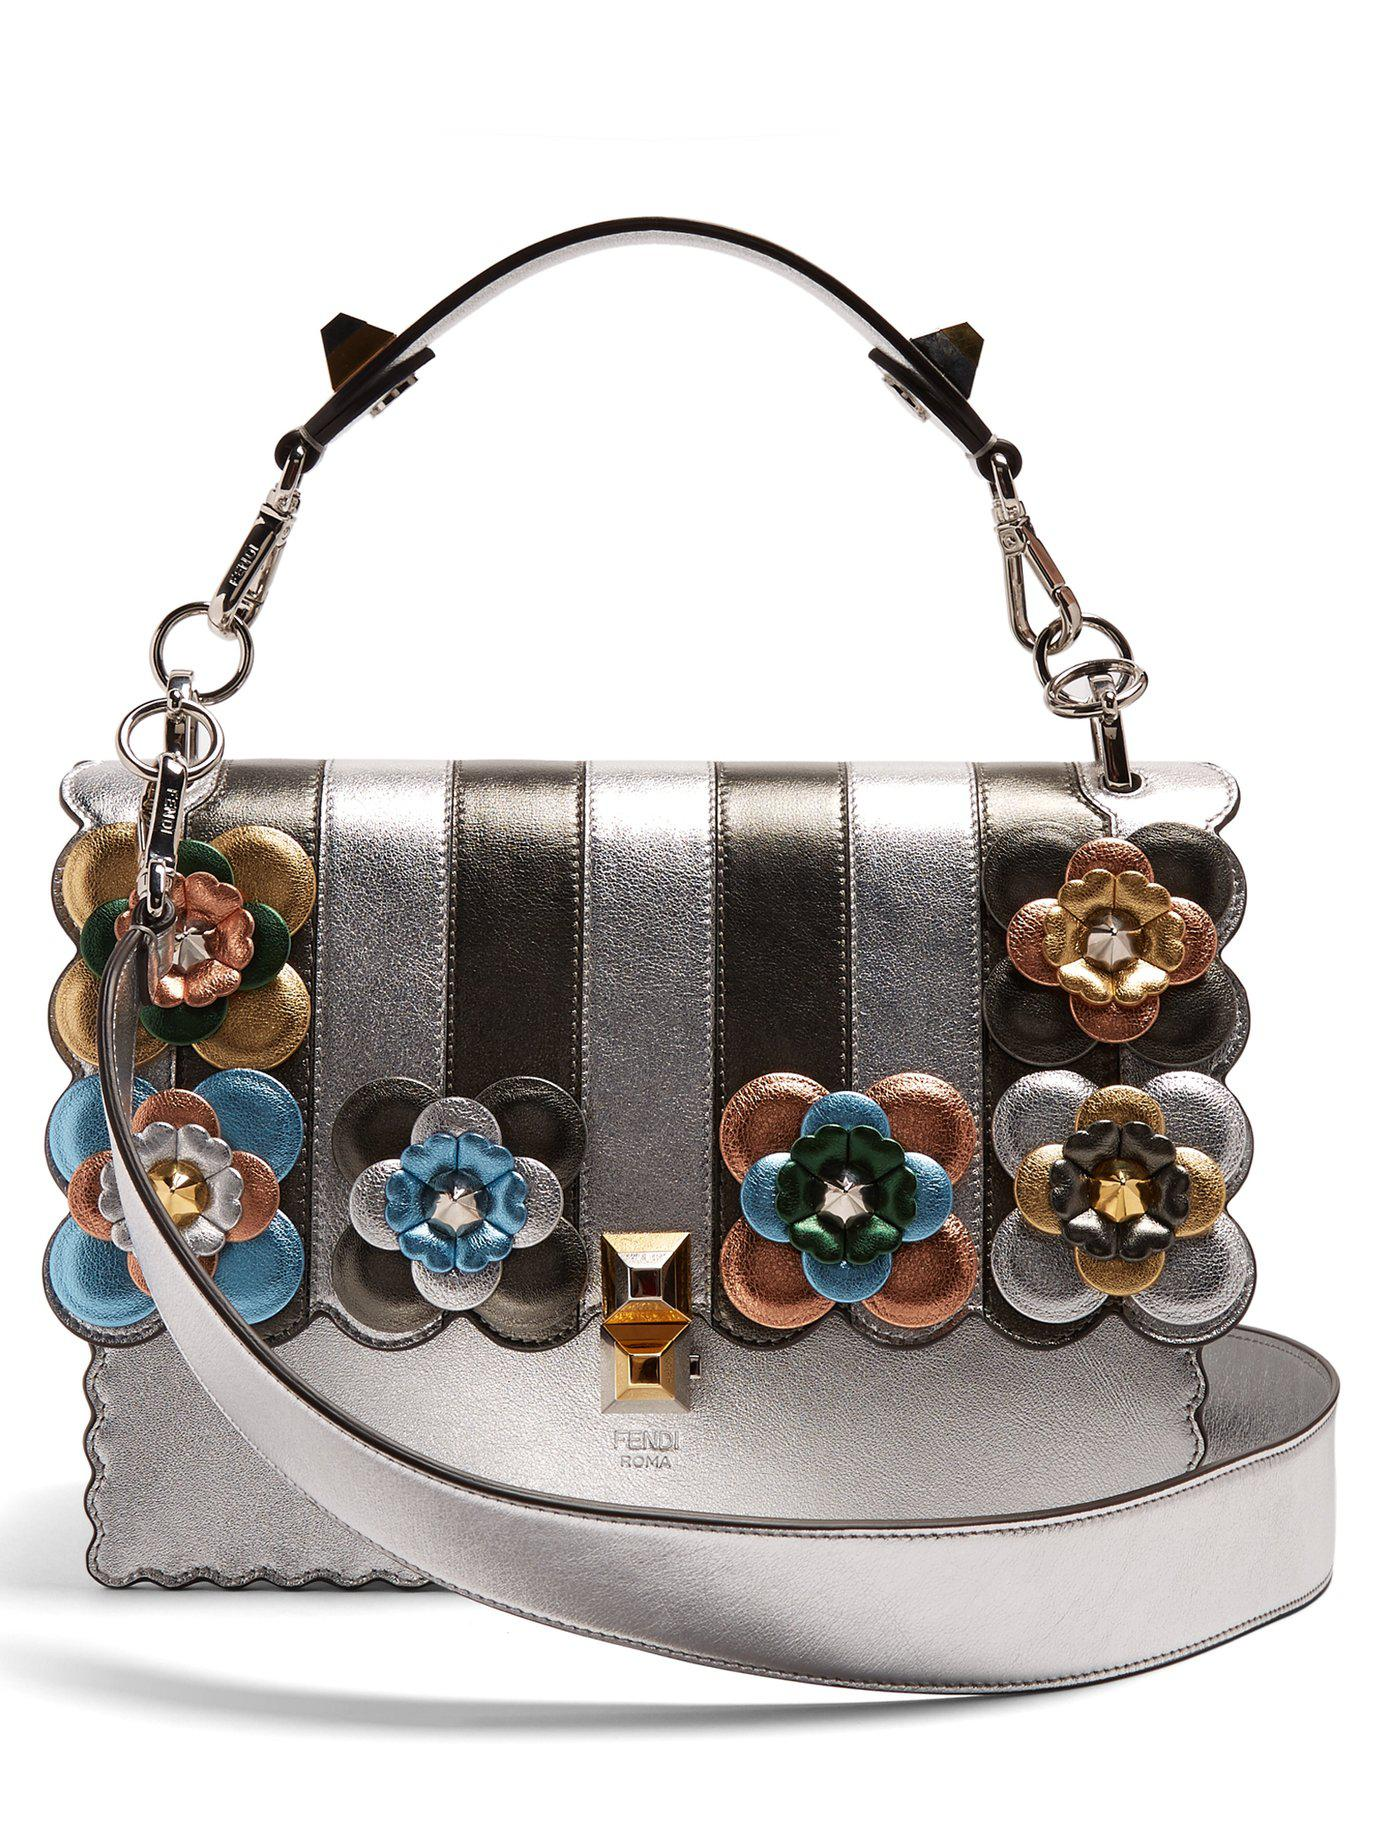 Lyst - Fendi - Kan I Flower Appliqué Leather Shoulder Bag - Womens ... 97eb80d616868